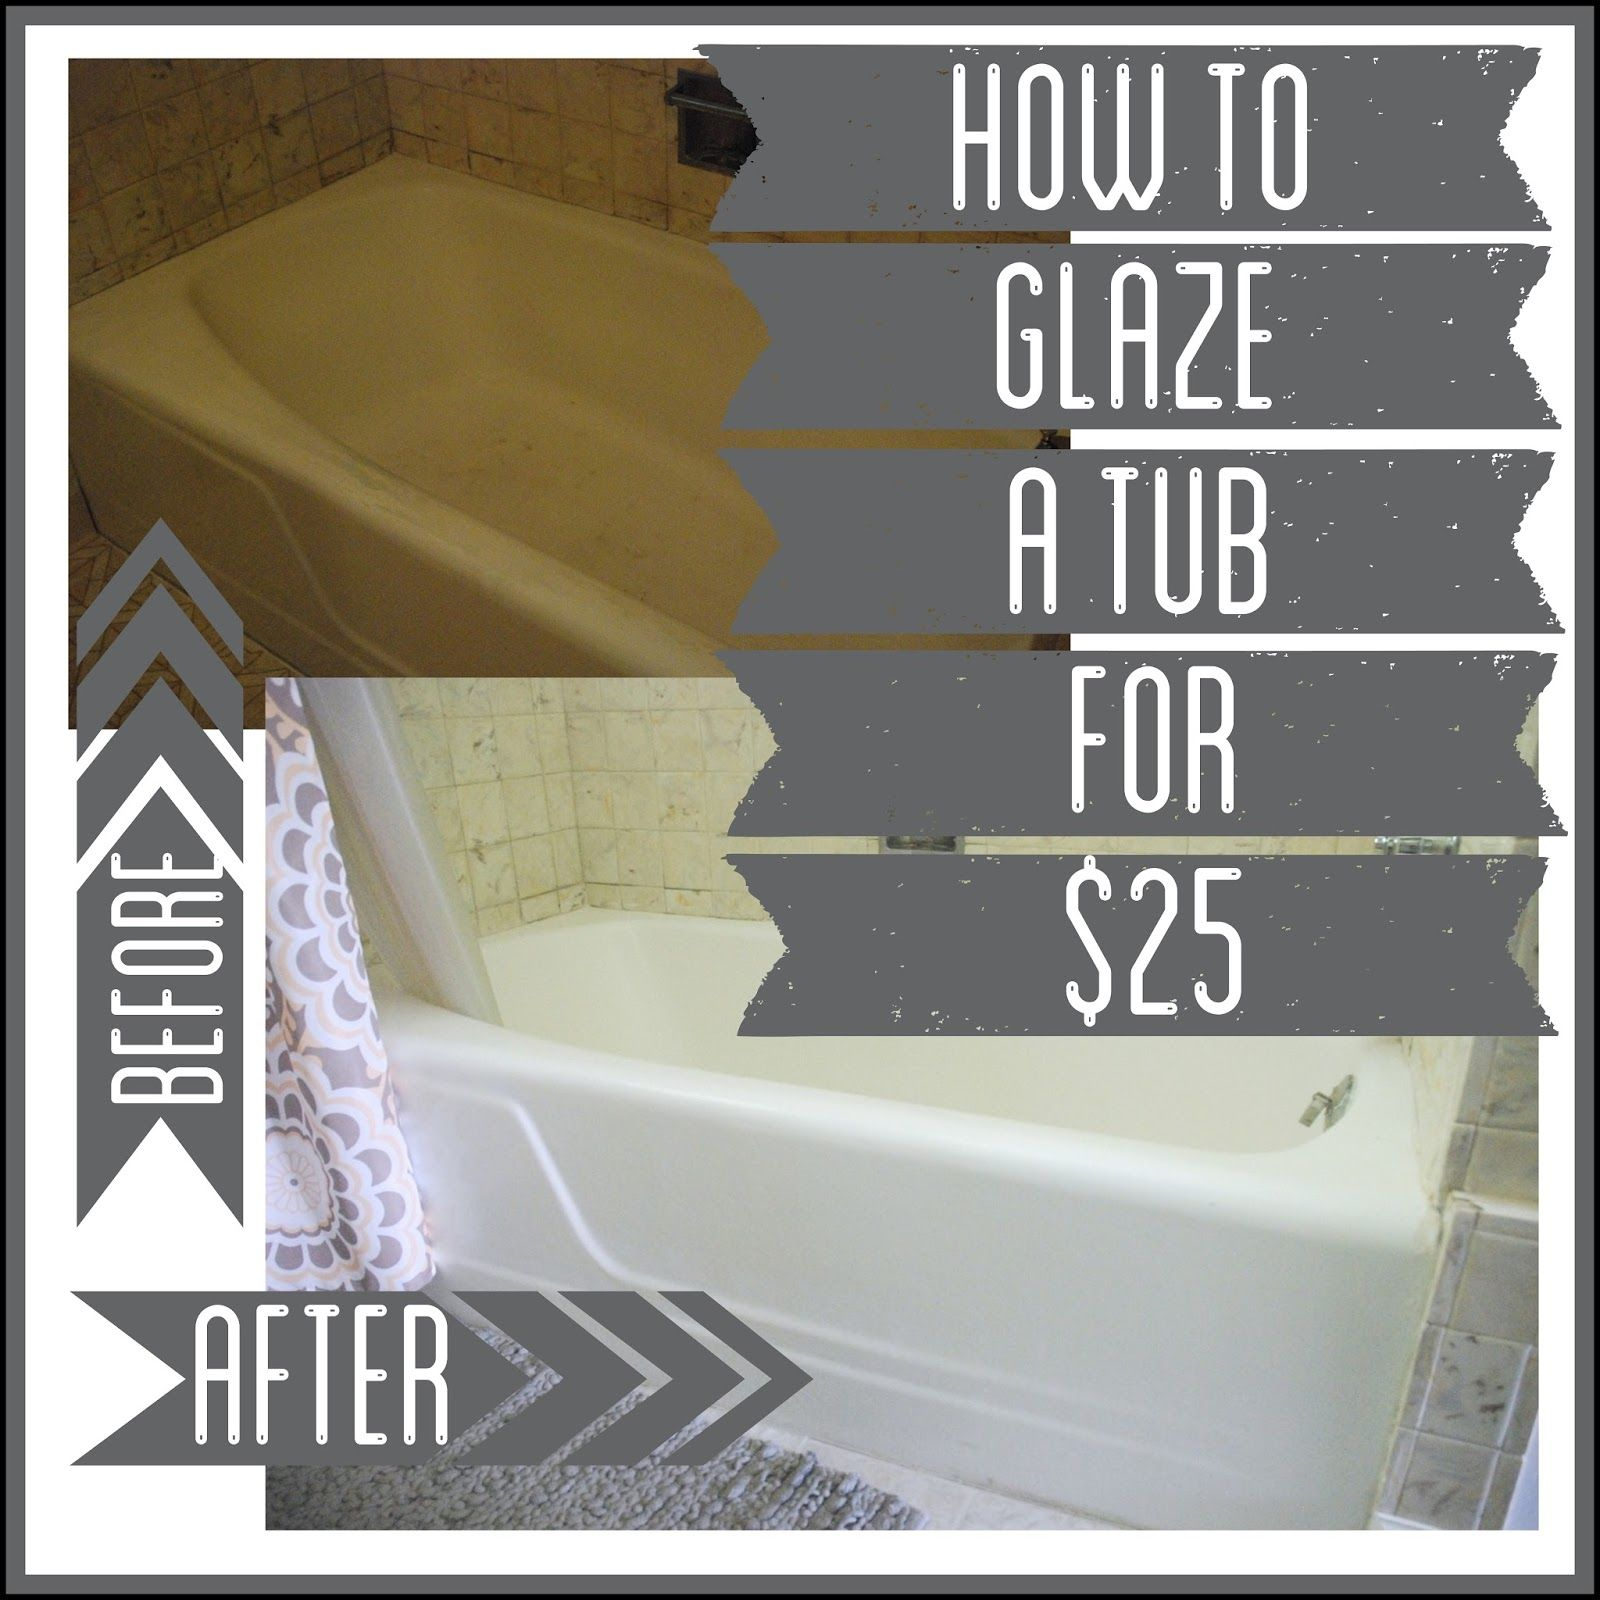 How to Glaze a Tub for $25 | Kitchen and bath ideas | Pinterest ...